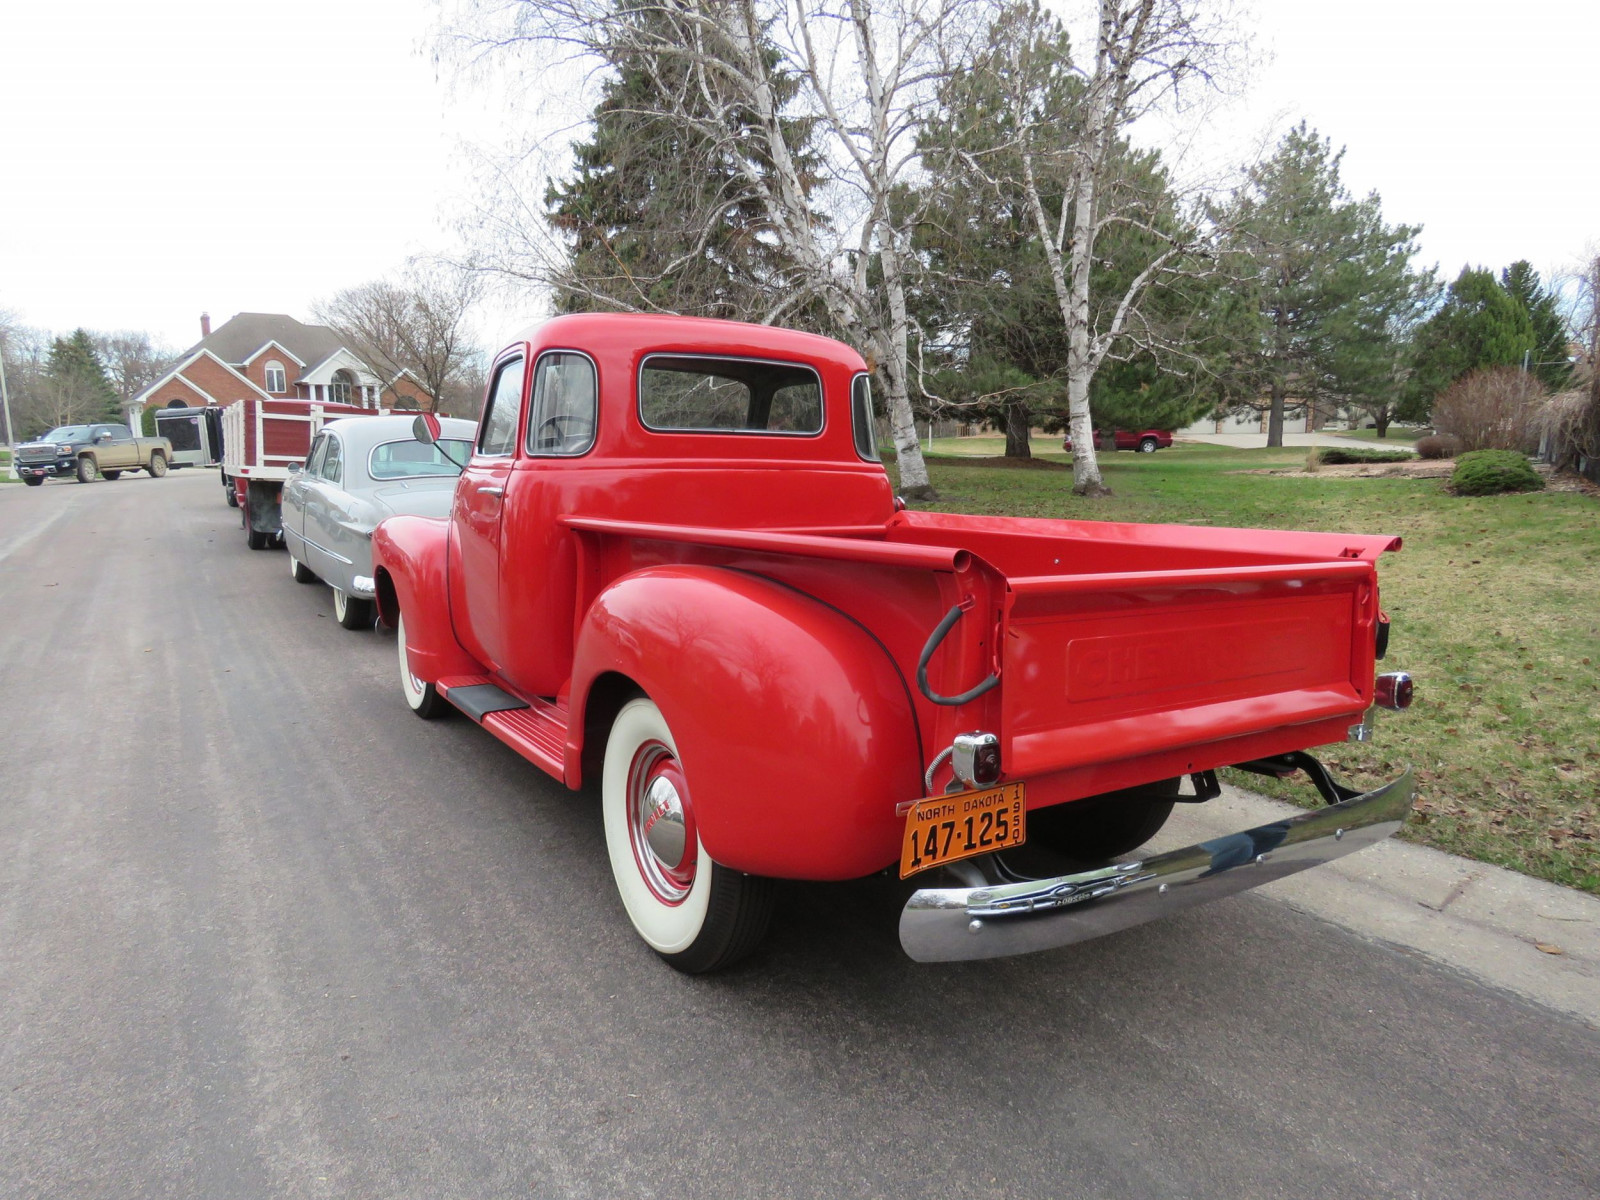 1950 Chevrolet 3100 5 window Pickup - Image 8